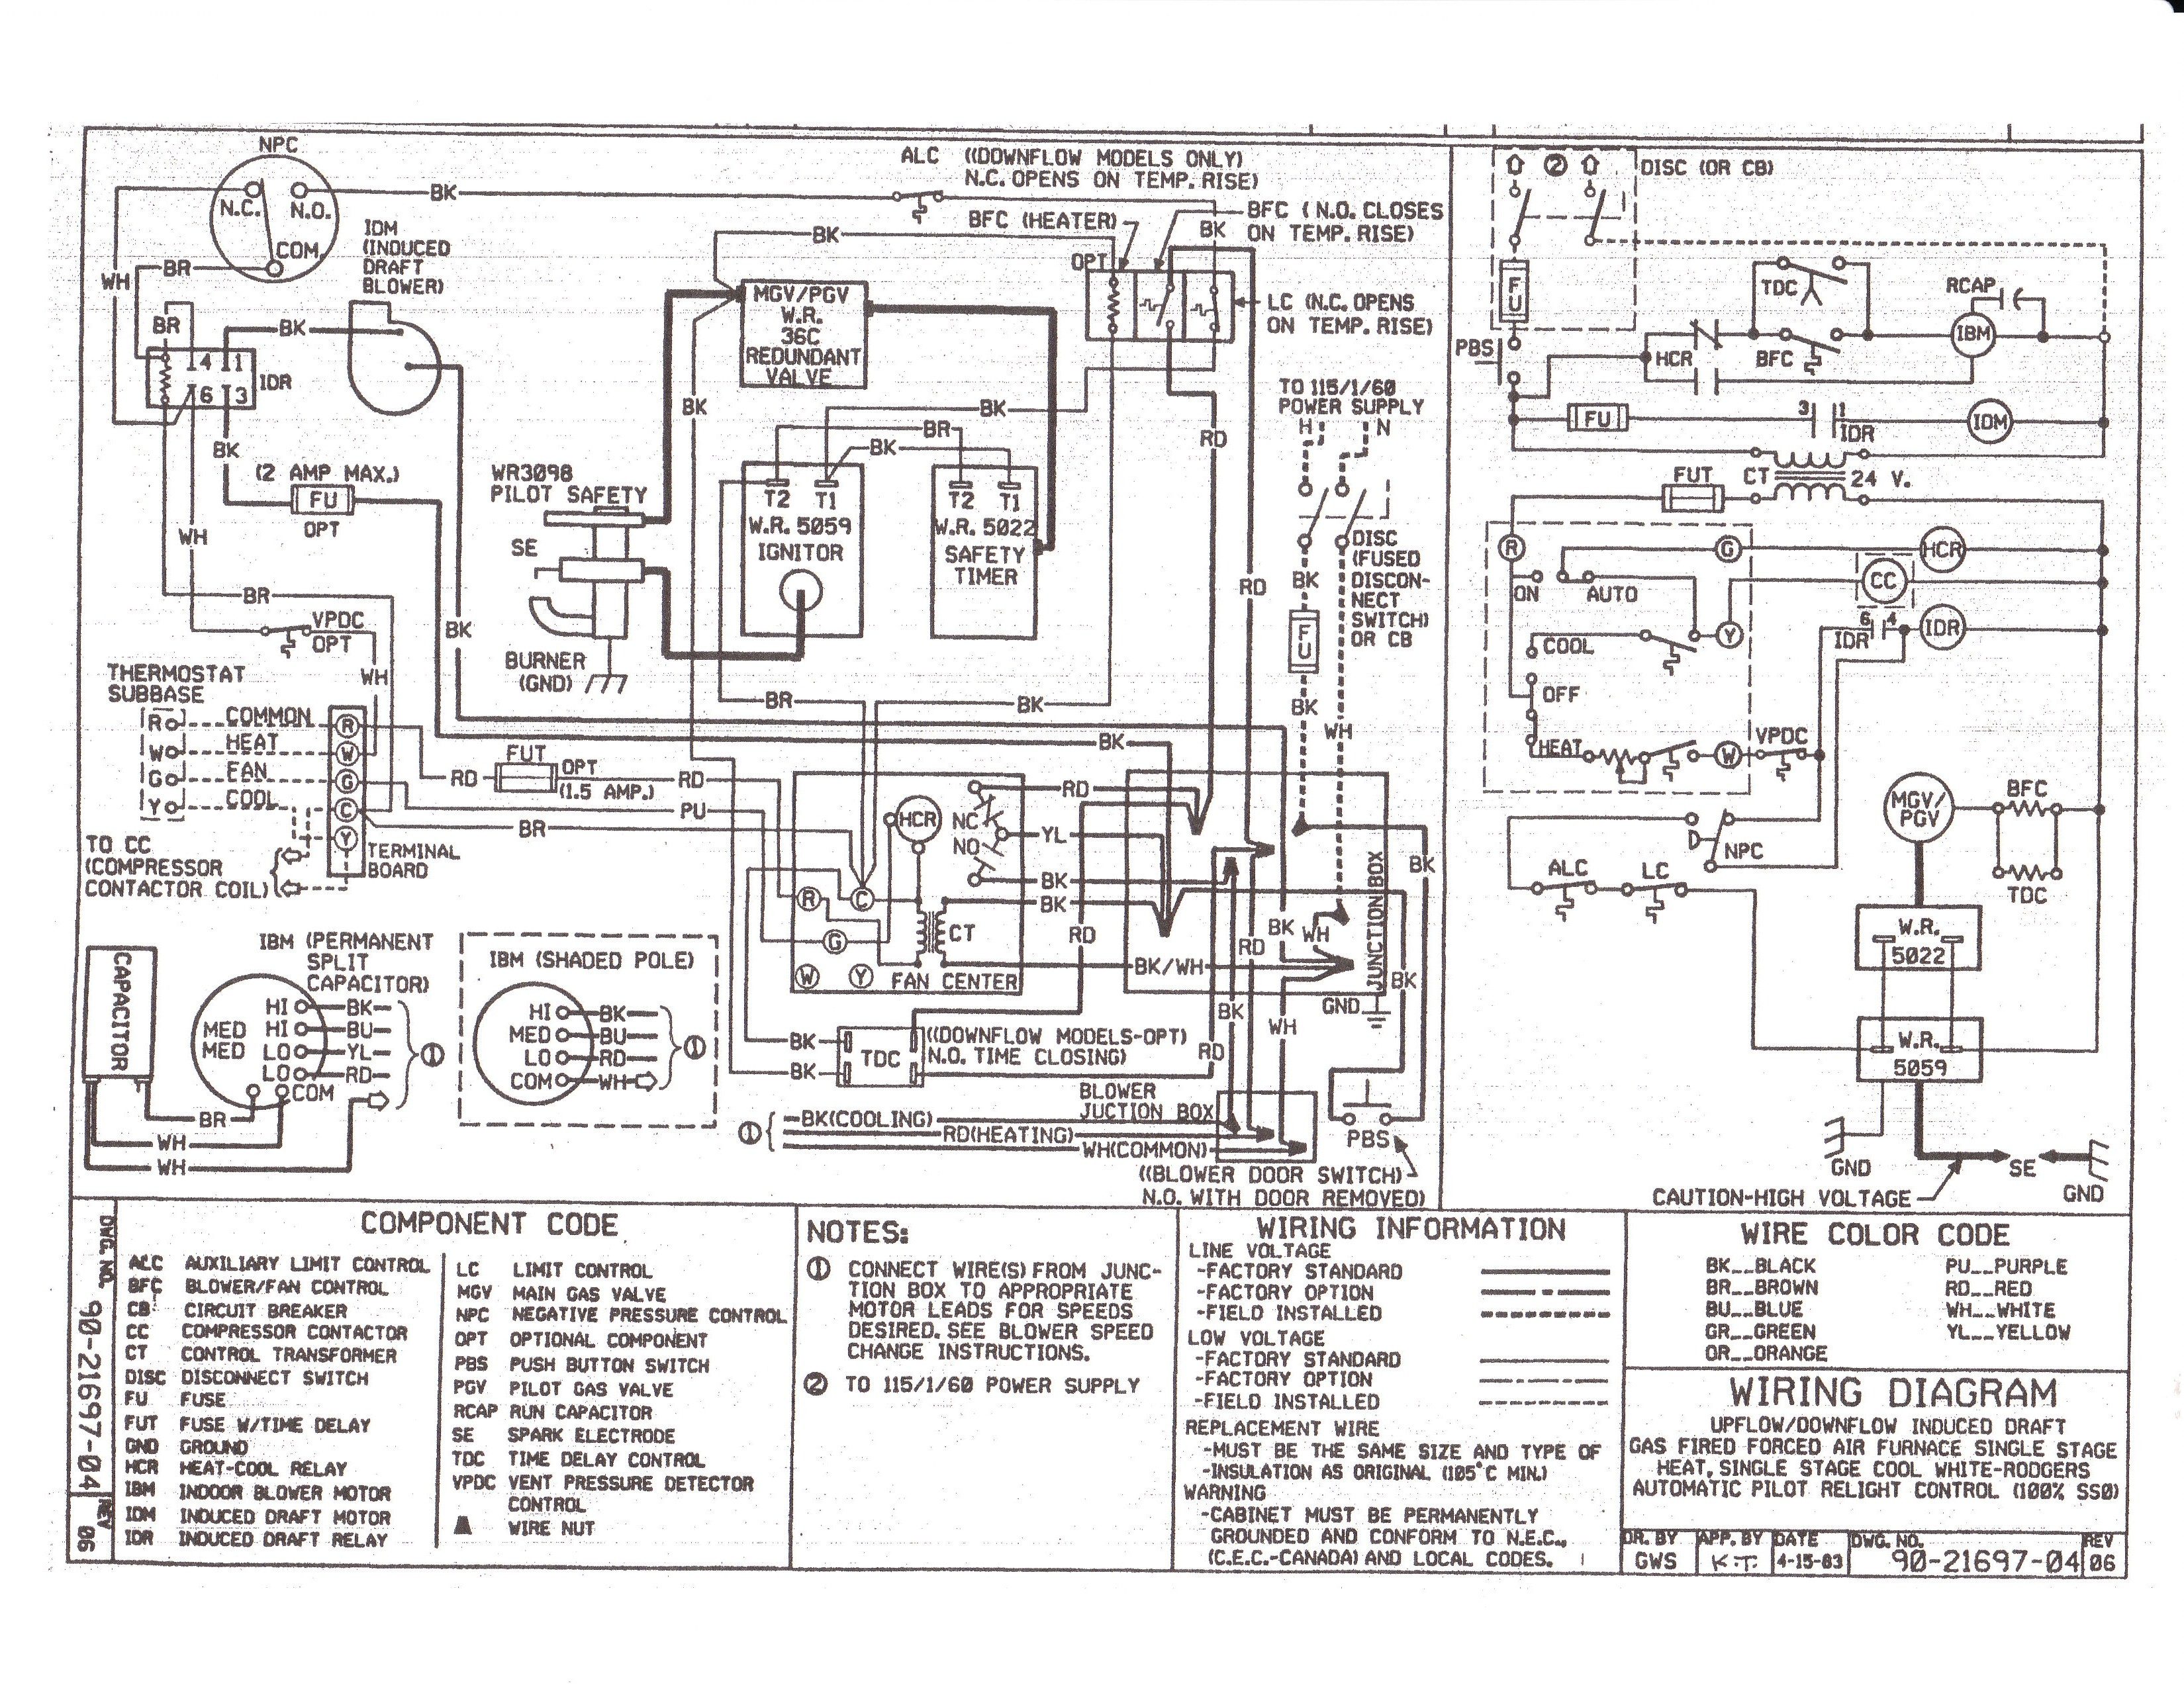 coleman mobile home ac wiring diagram xantech ir receiver thermostat best library air conditioning rh 75 informaticaonlinetraining co house